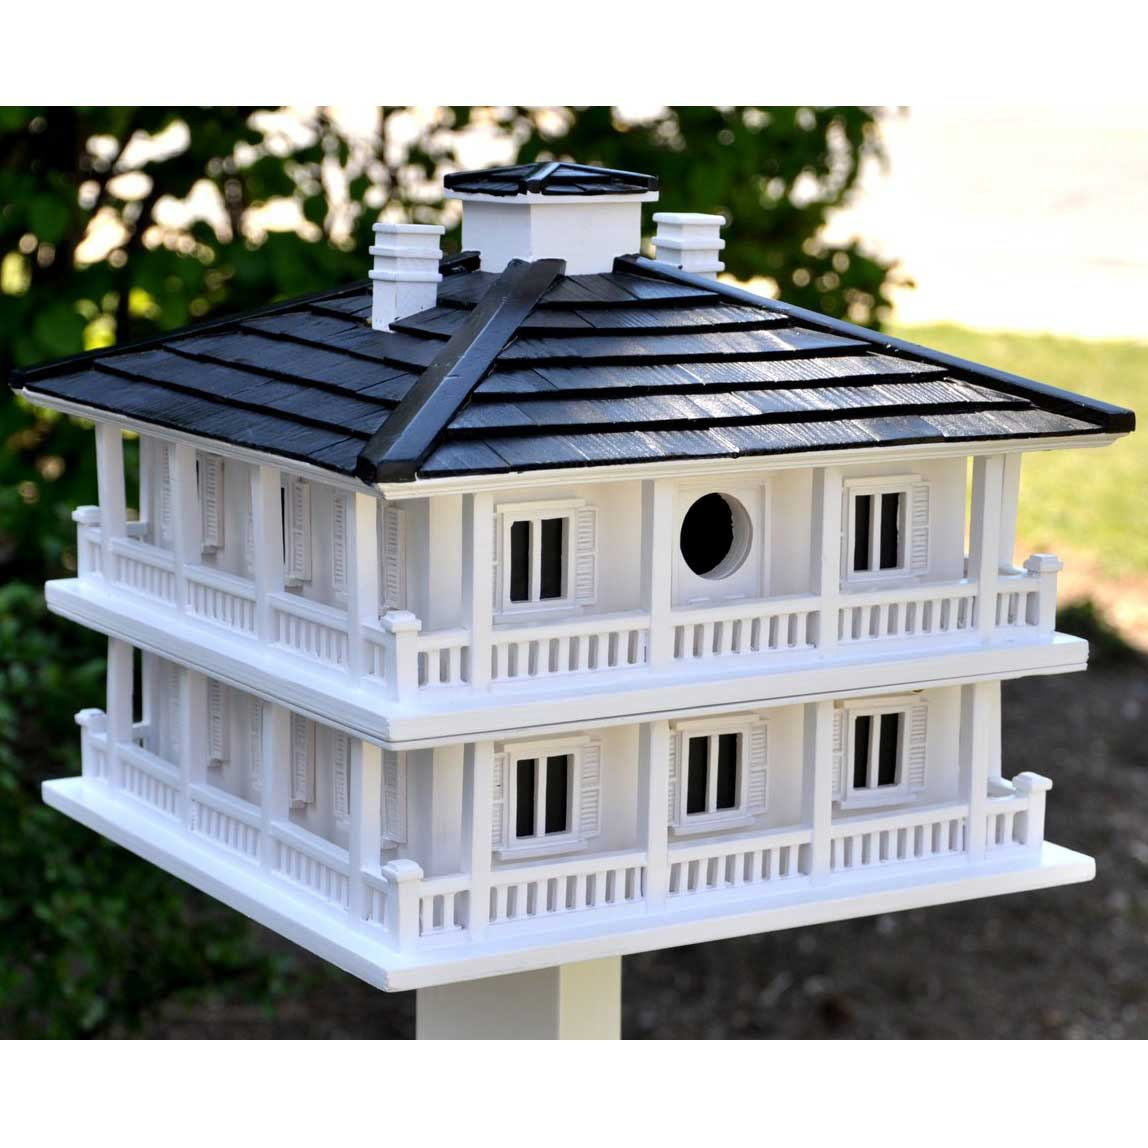 decorative-clubhouse-birdhouse-HB-2048.jpg